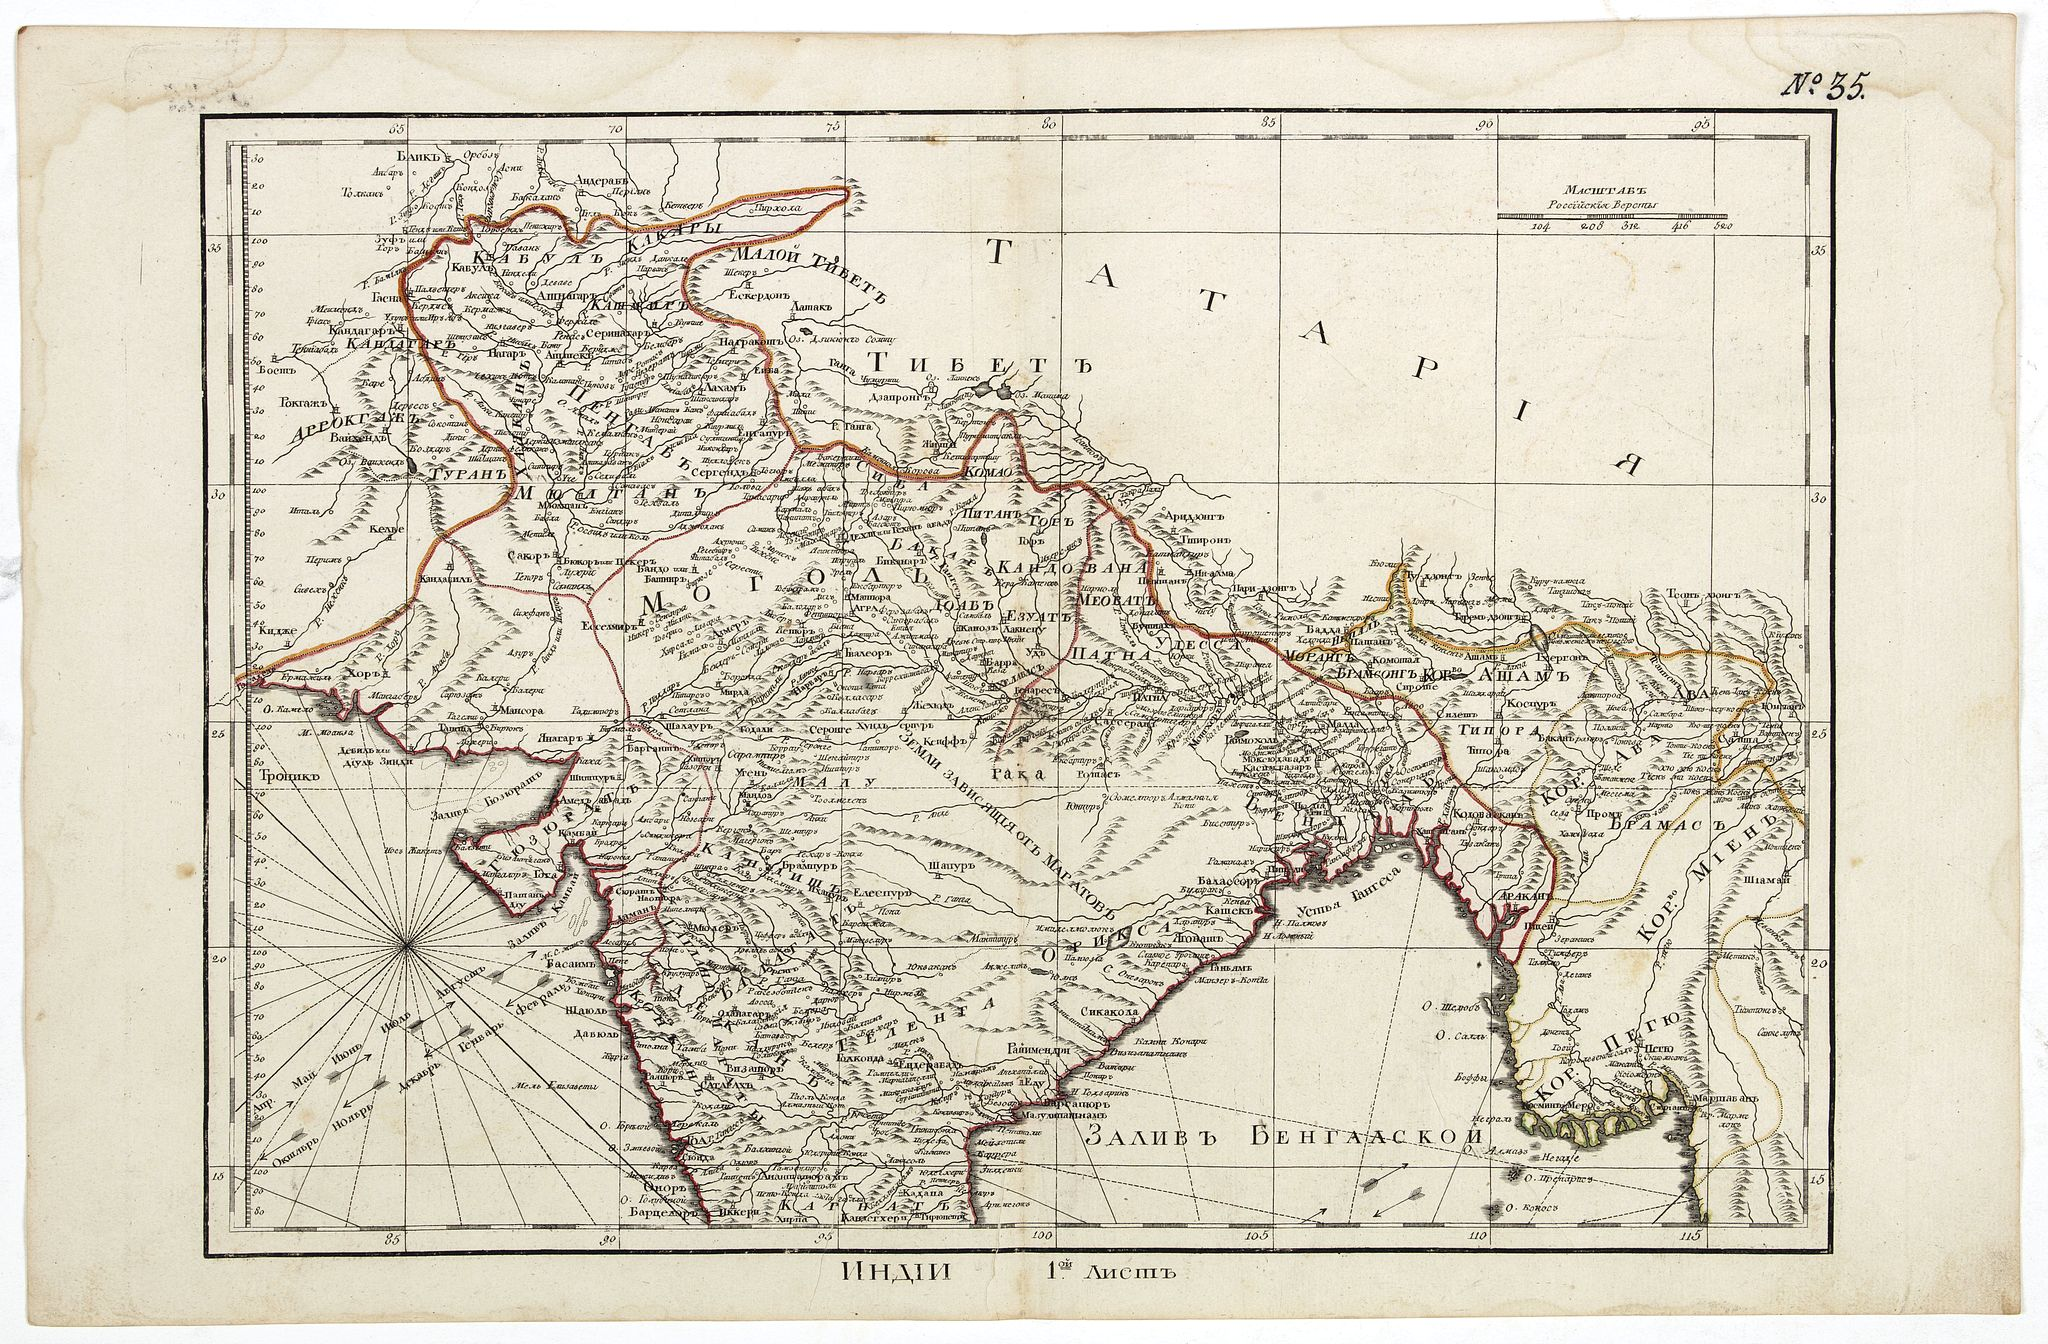 MINING SCHOOL OF USE OF YOUGHTS / BONNE, R. -  ИНДIИ [Map of India in Cyrillic].